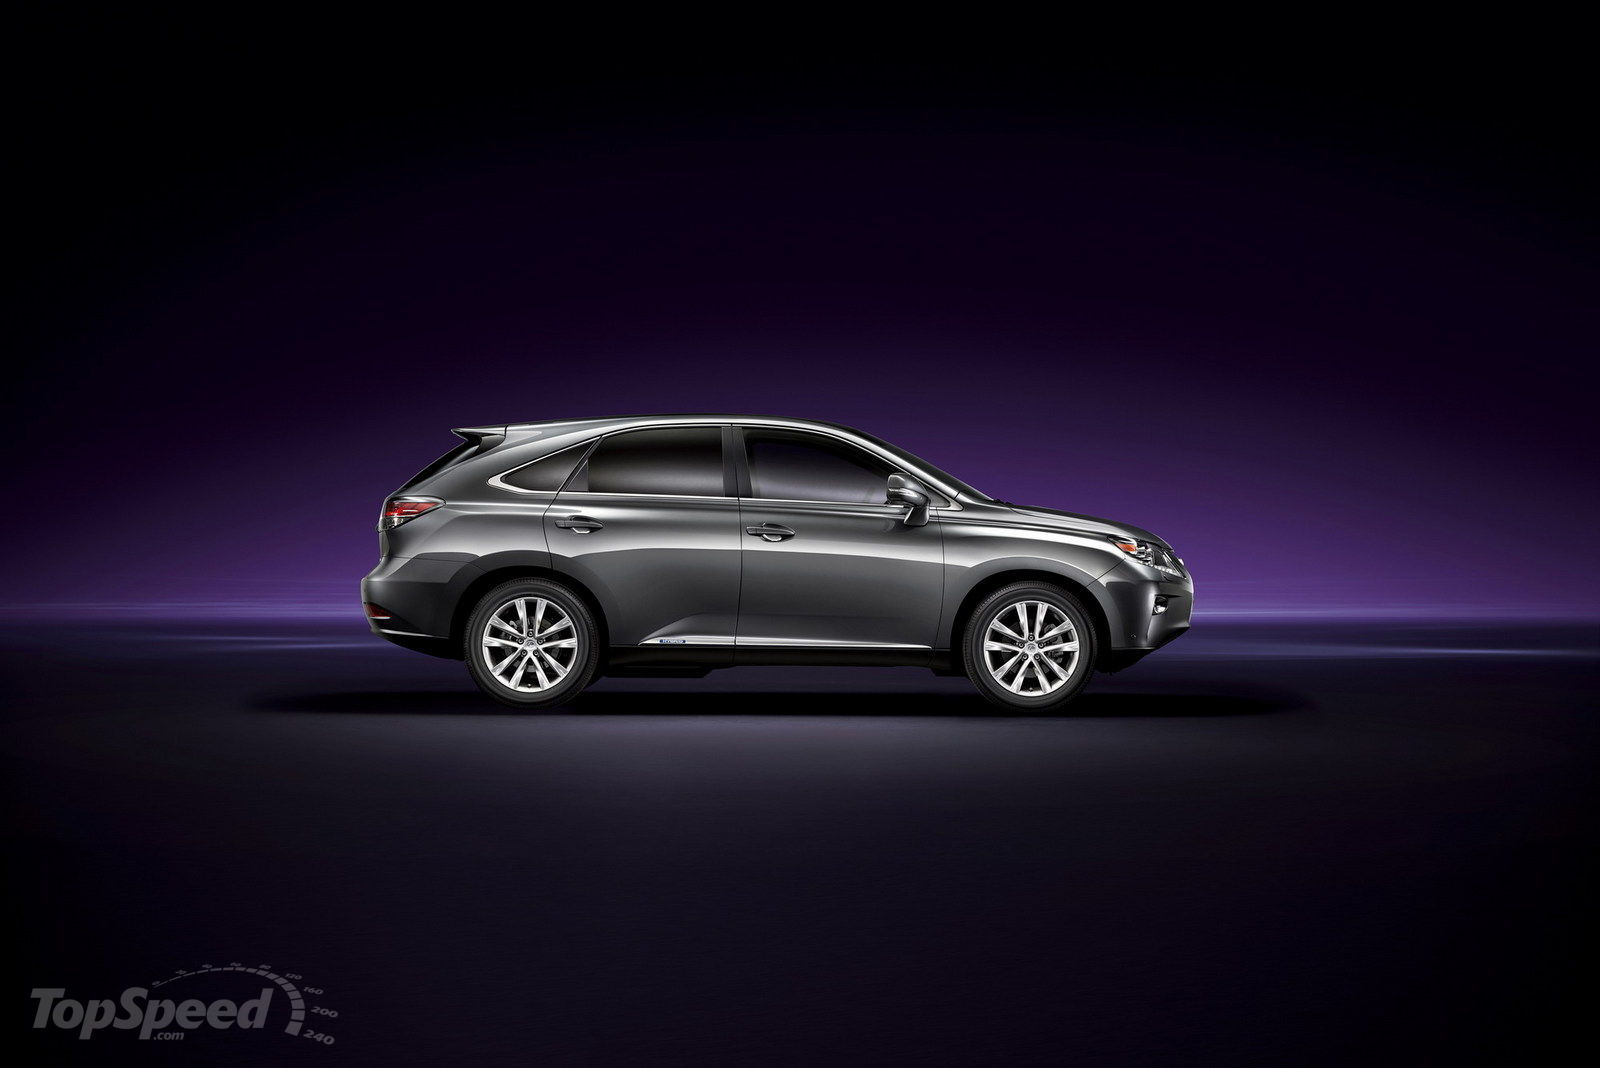 2013 lexus rx 450h picture 441604 car review top speed. Black Bedroom Furniture Sets. Home Design Ideas